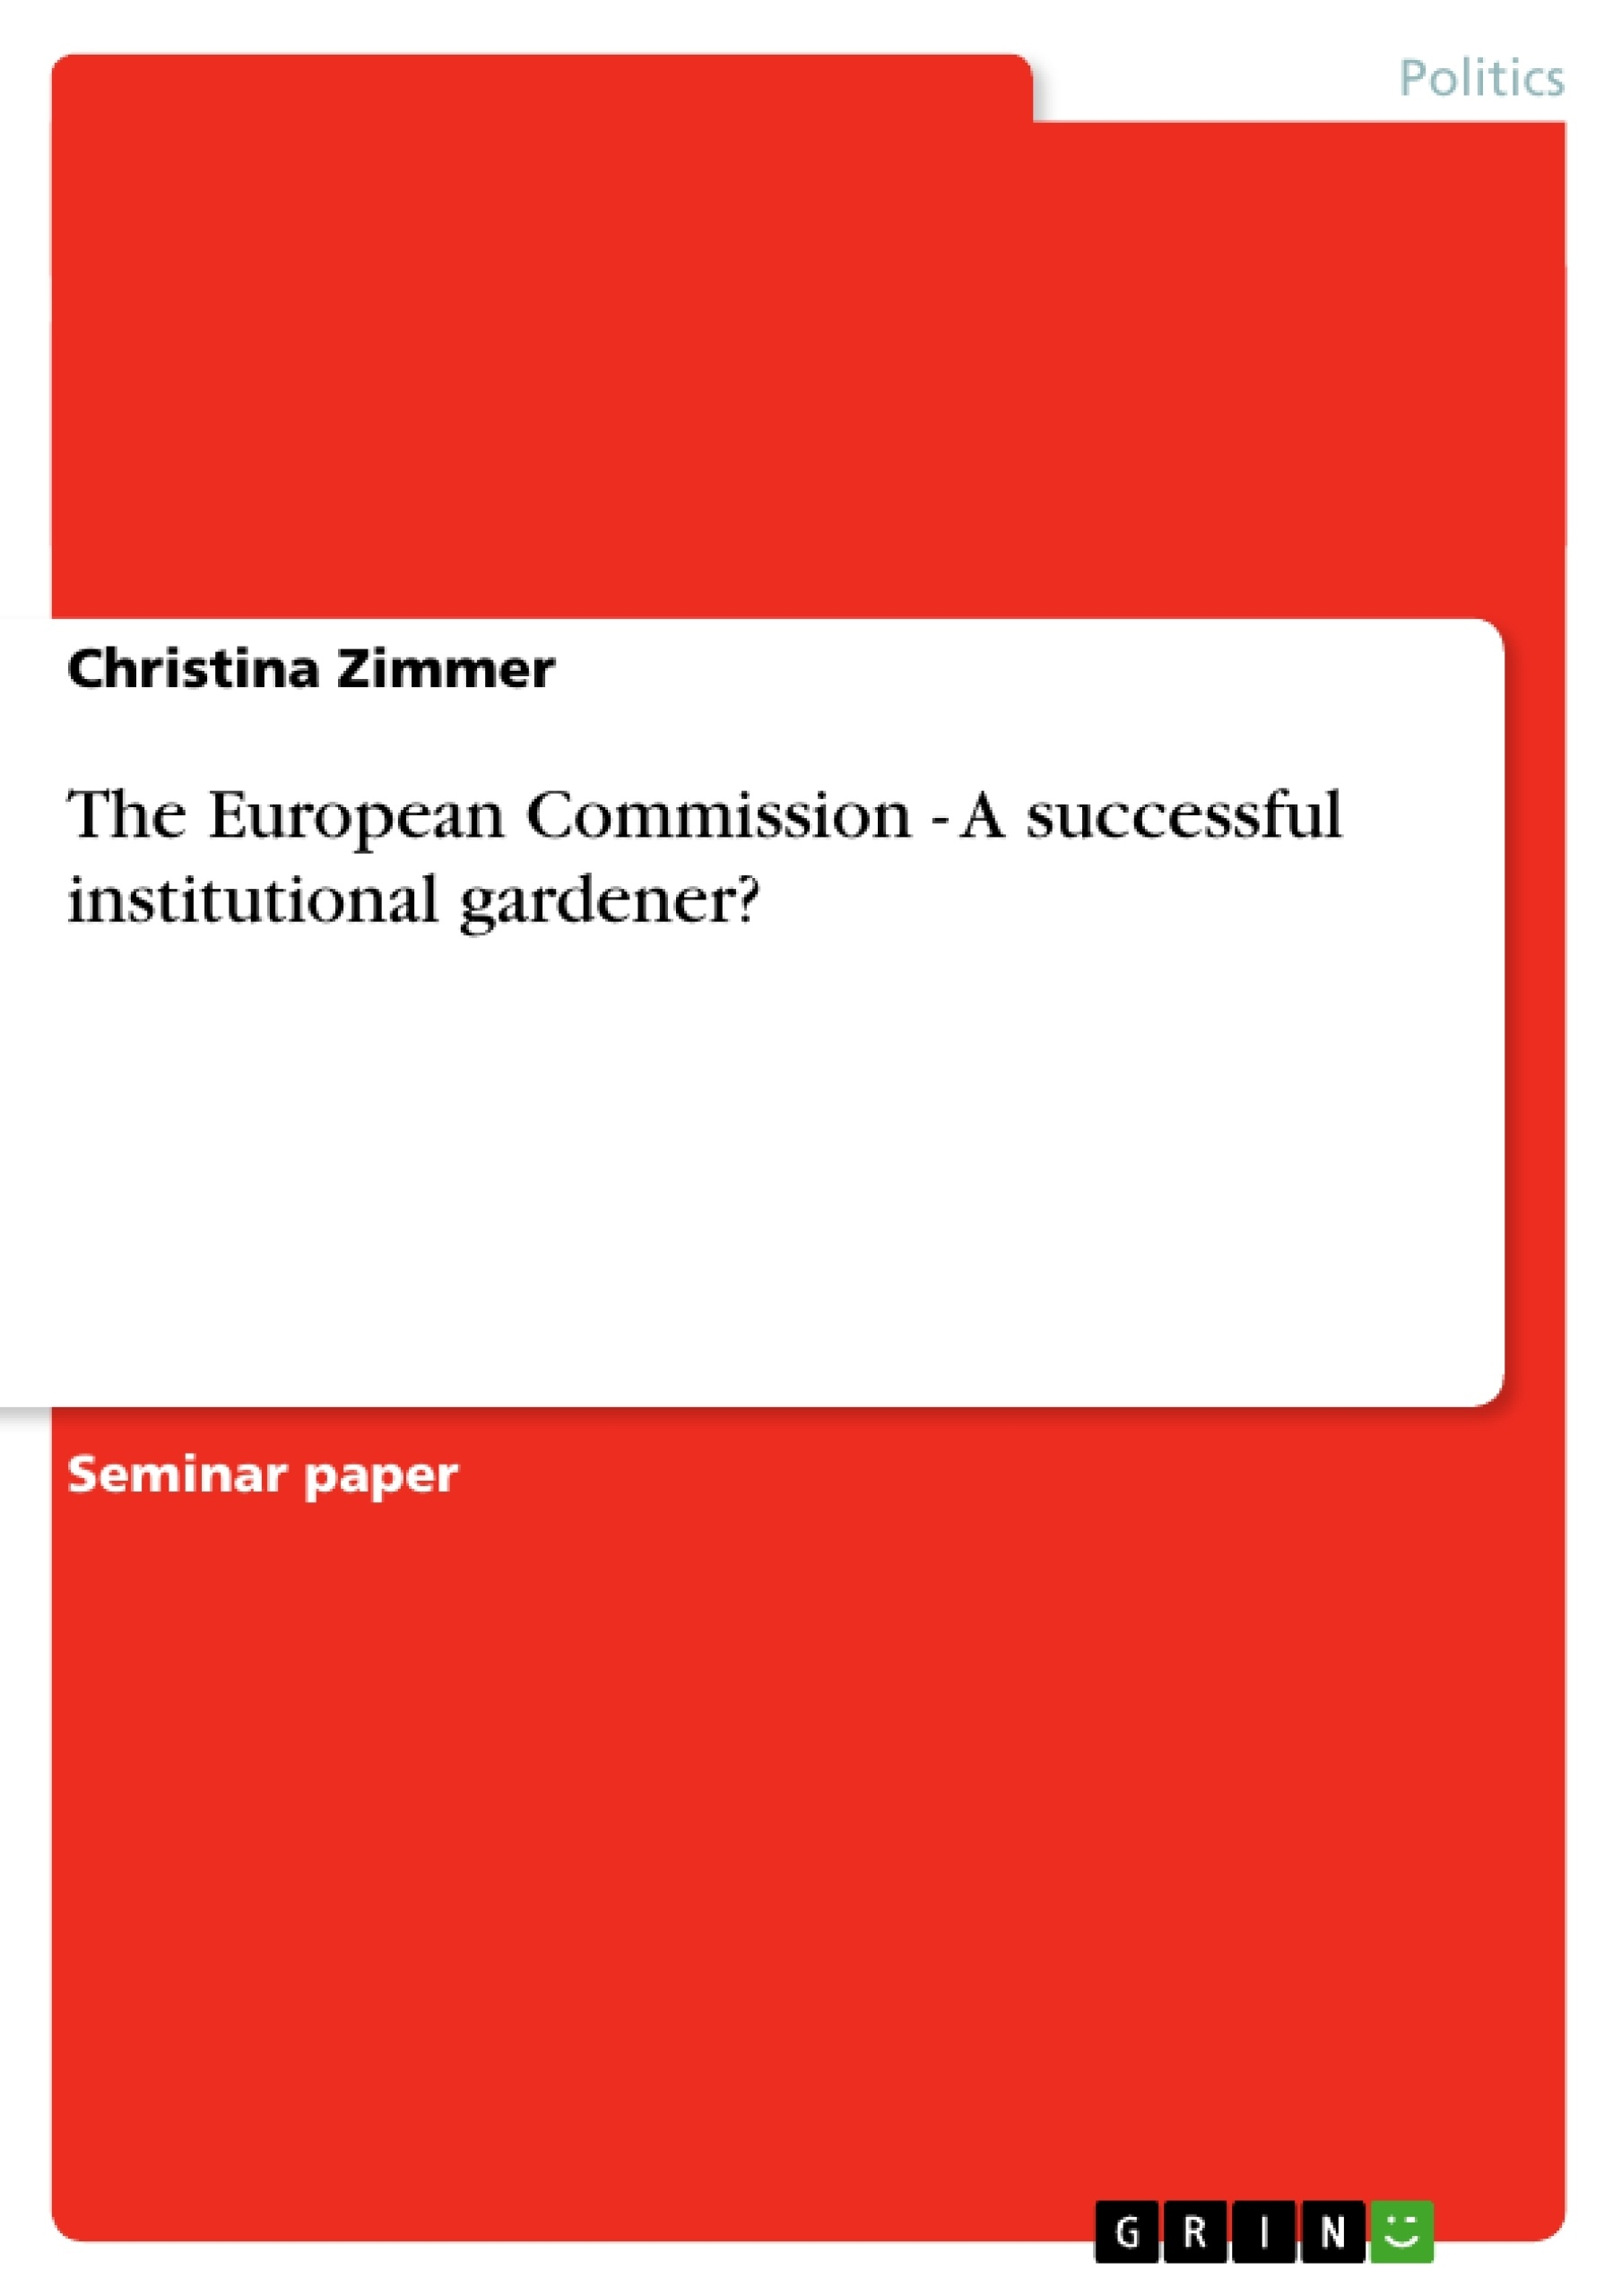 Title: The European Commission - A successful institutional gardener?